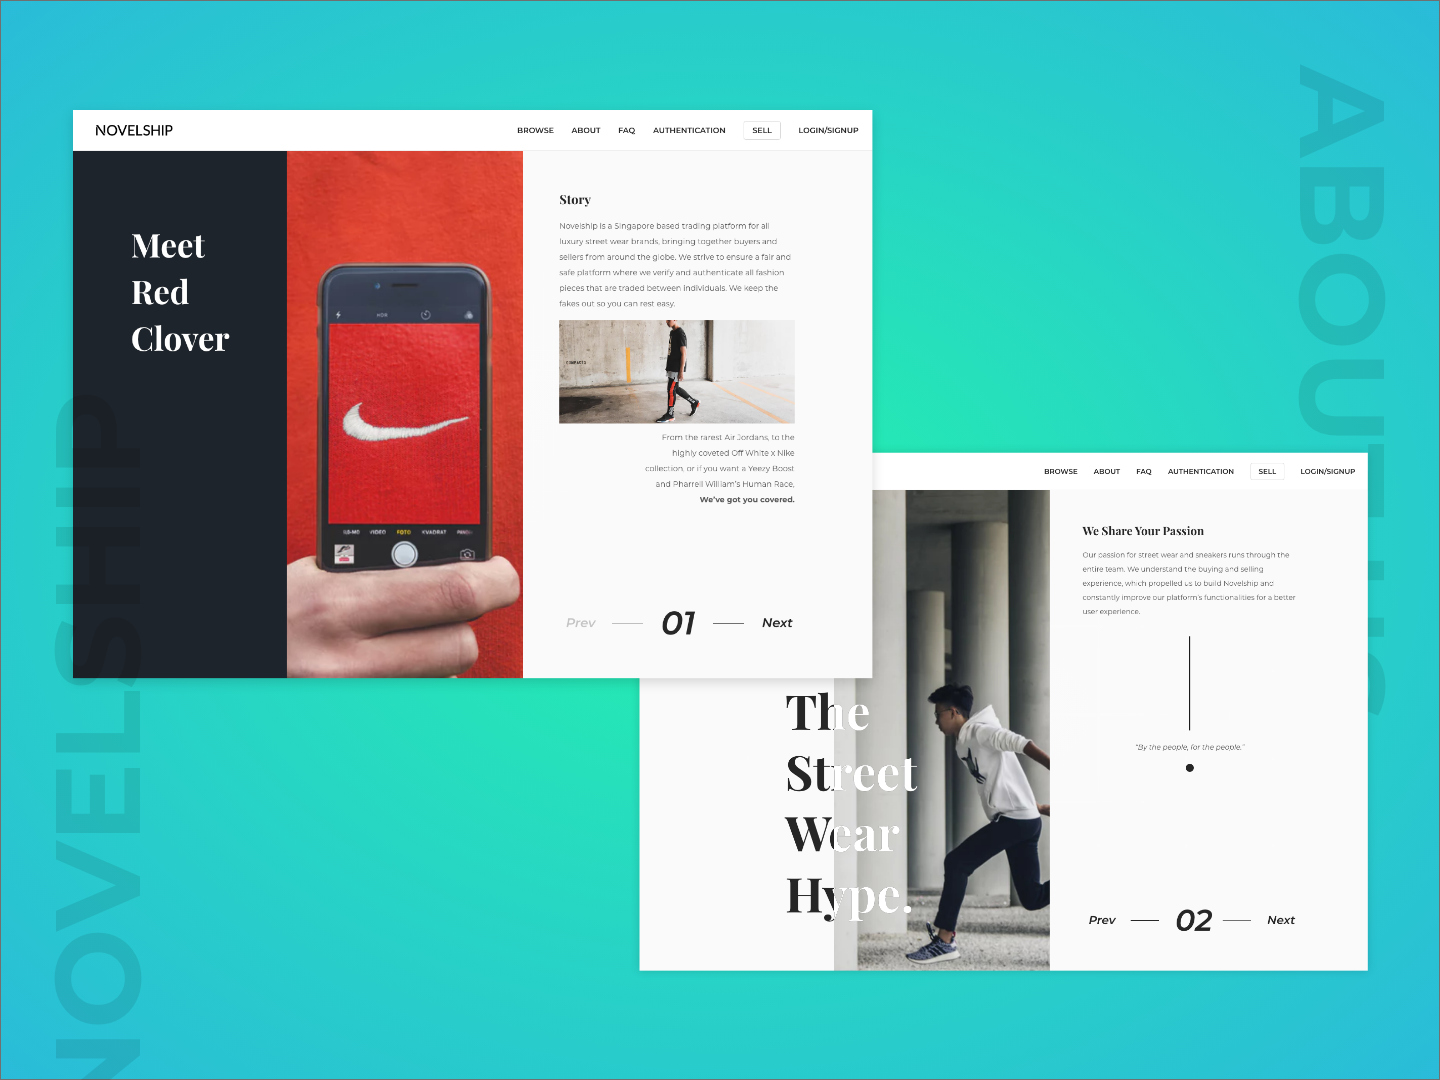 Redesign Novelship About Page typography branding gradient design clean web design user interface landing page ui ux uiux ui design layout